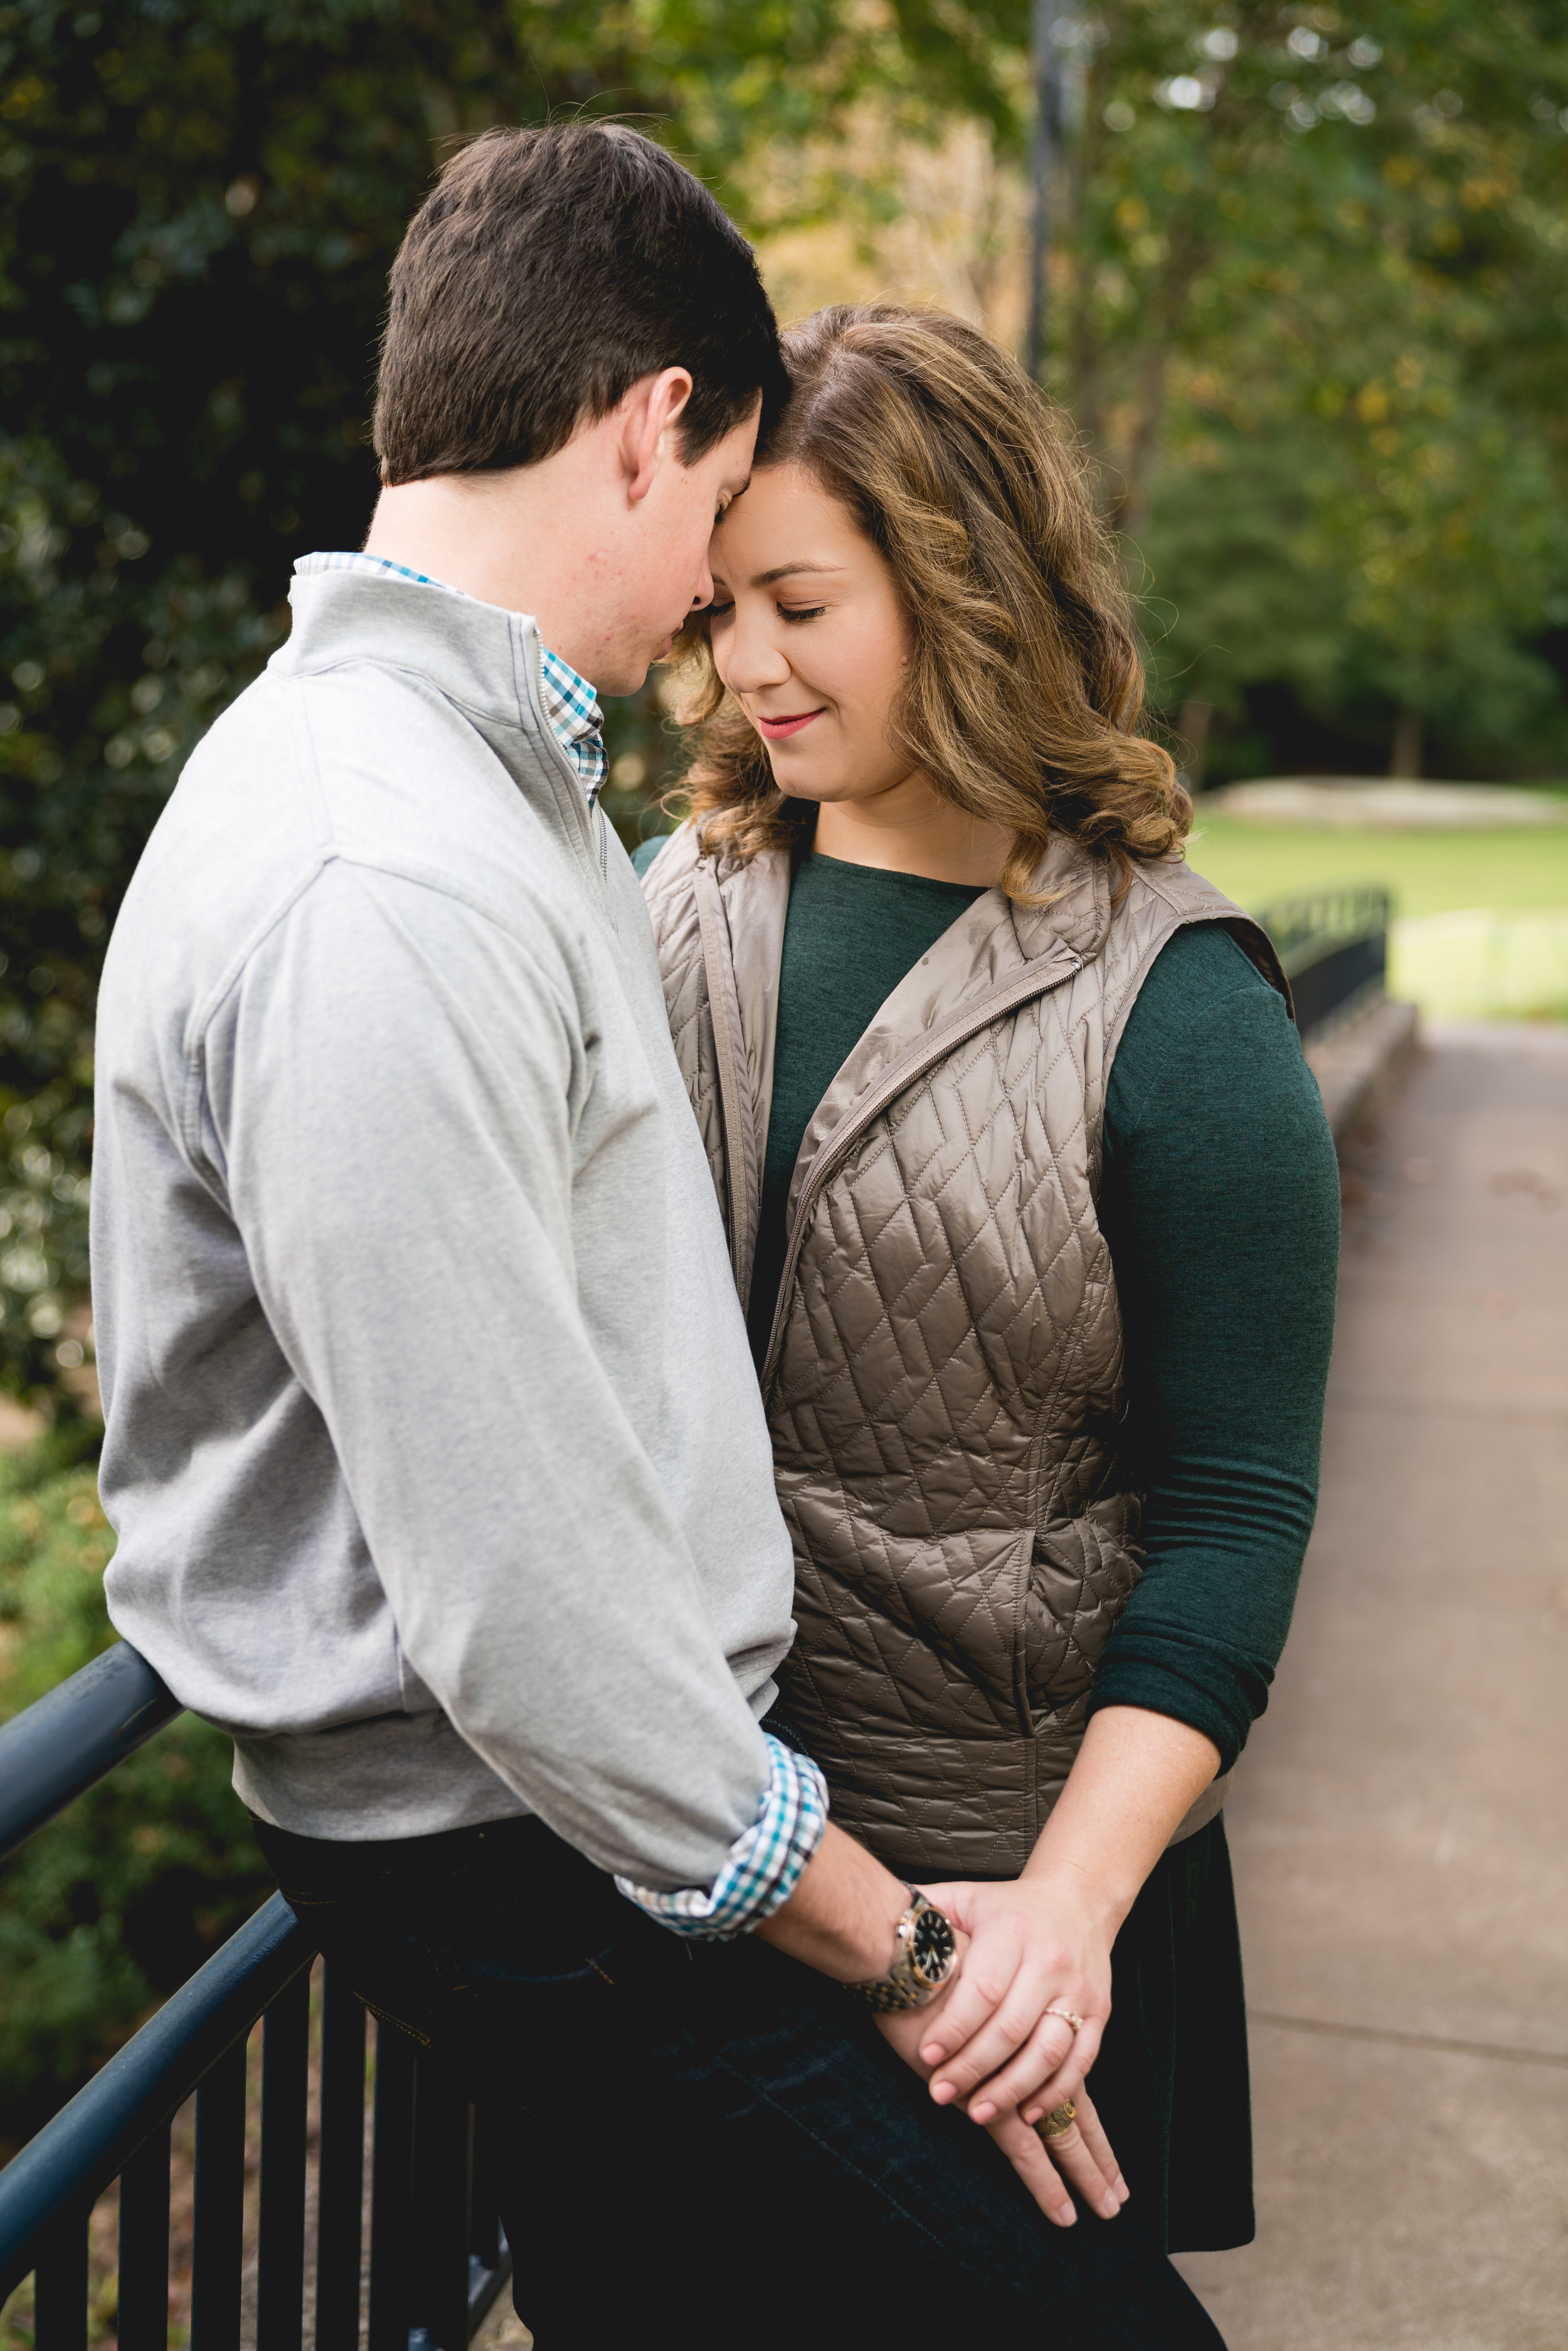 Couple in falls park | Engagement Session Downtown Greenville, SC